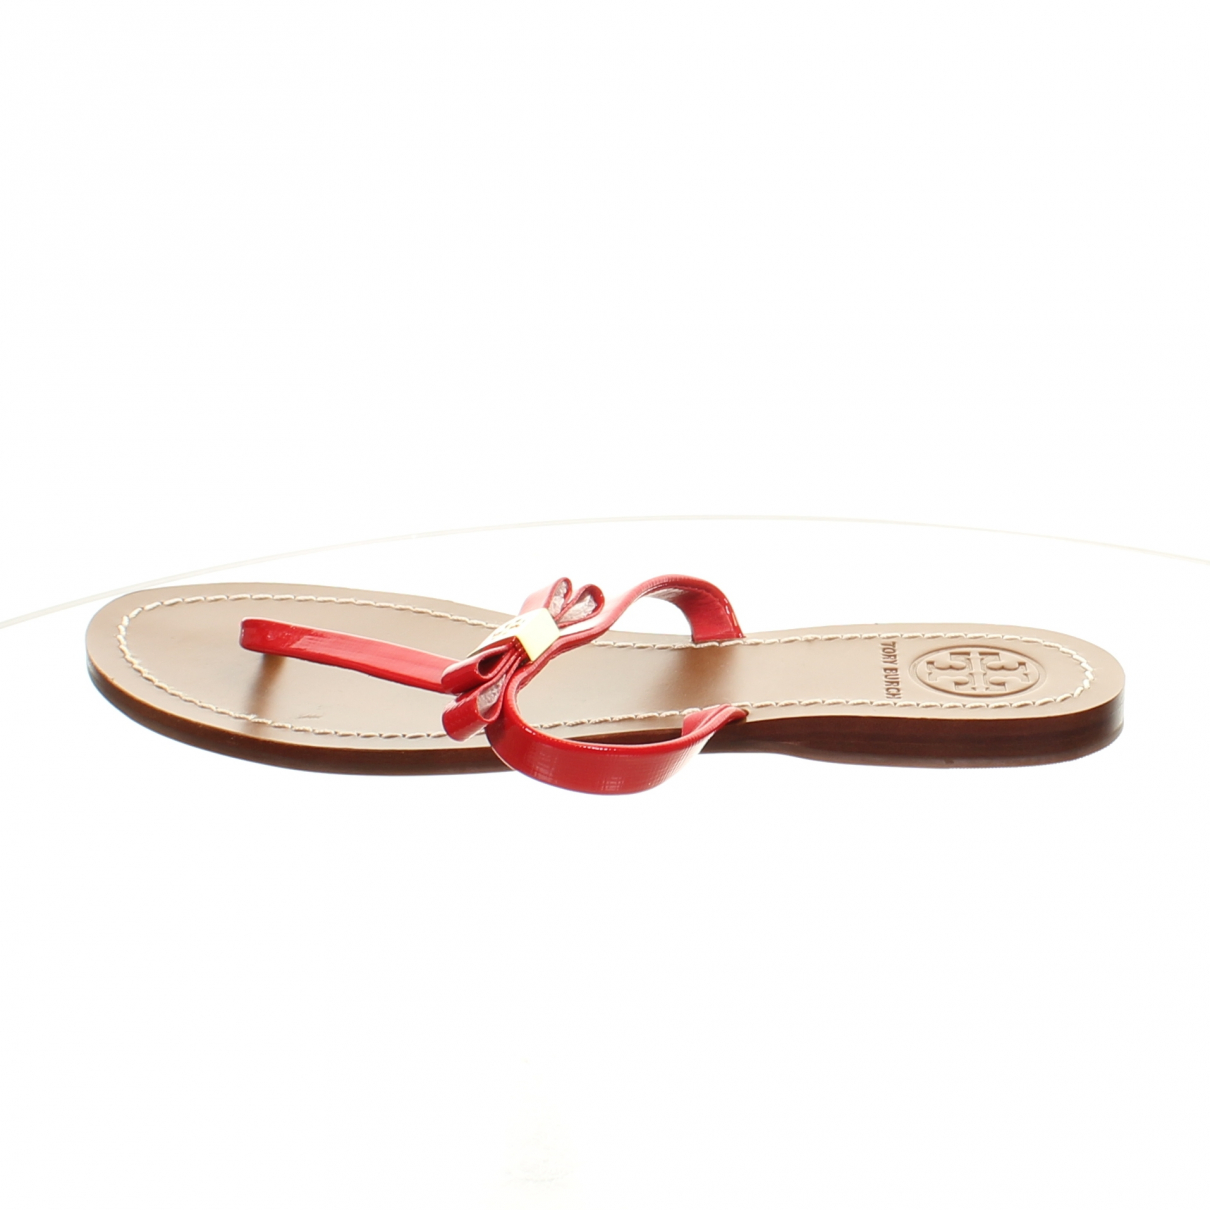 Tory Burch N Red Patent leather Sandals for Women 7 US